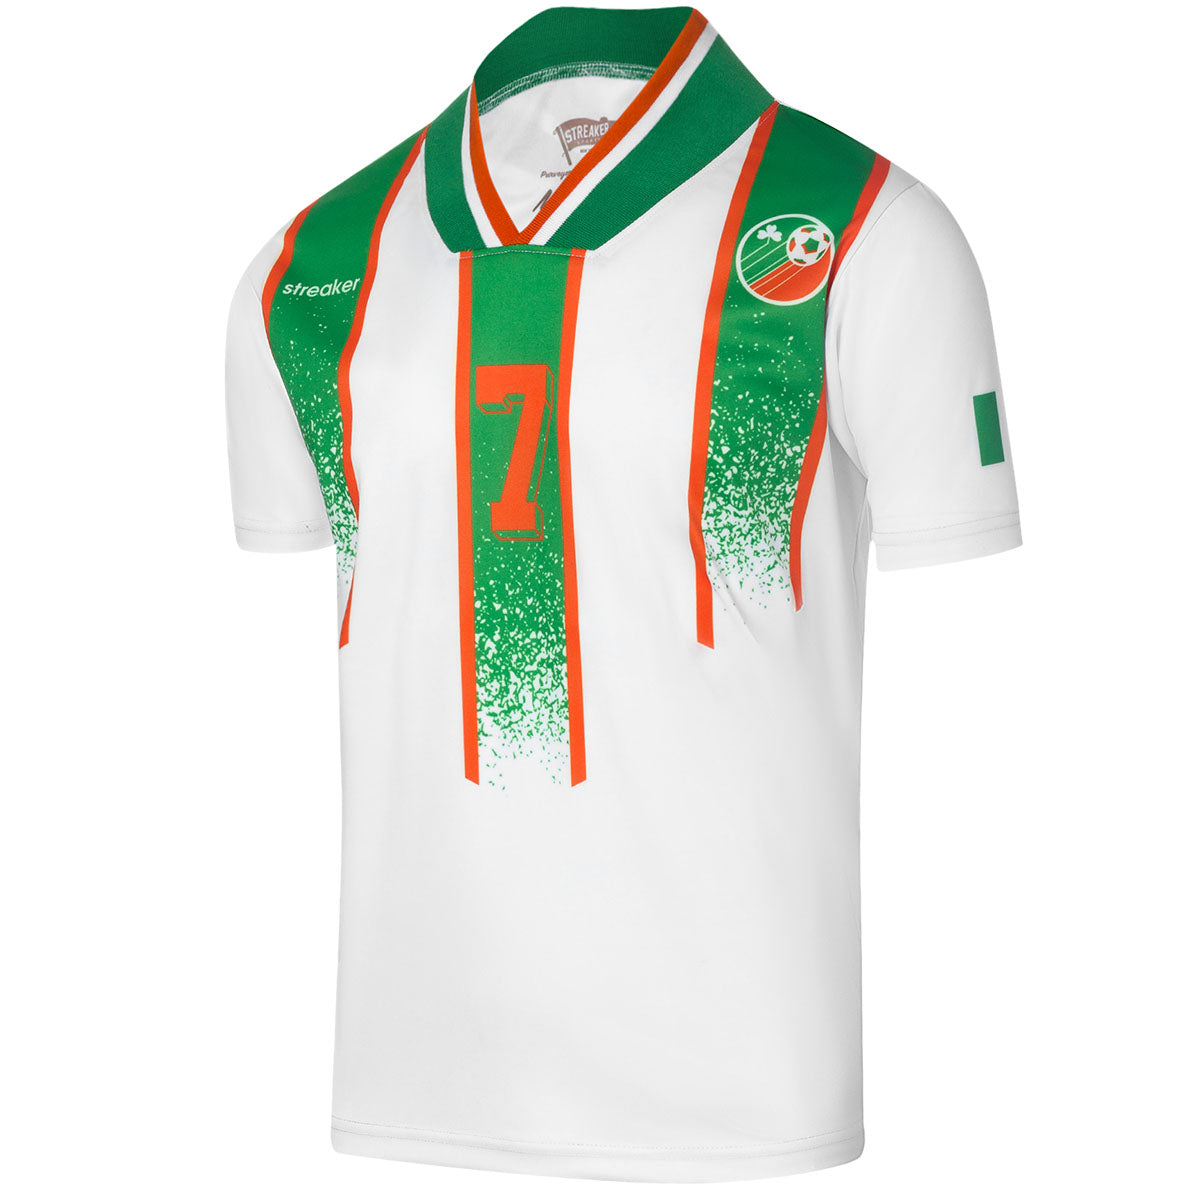 4c6e4c67773 1994 Ireland World Cup Soccer Jersey – Streaker Sports